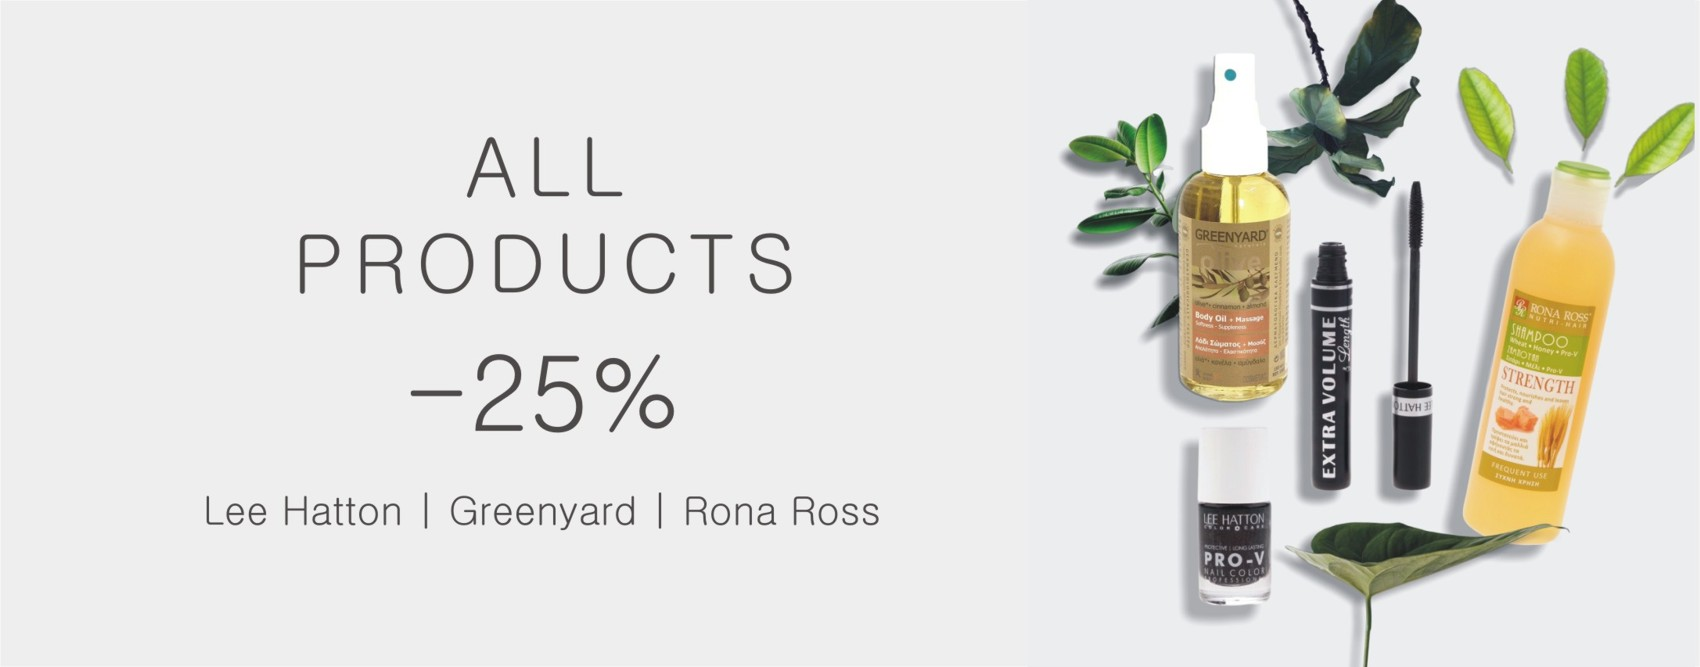 25% ALL PRODUCTS